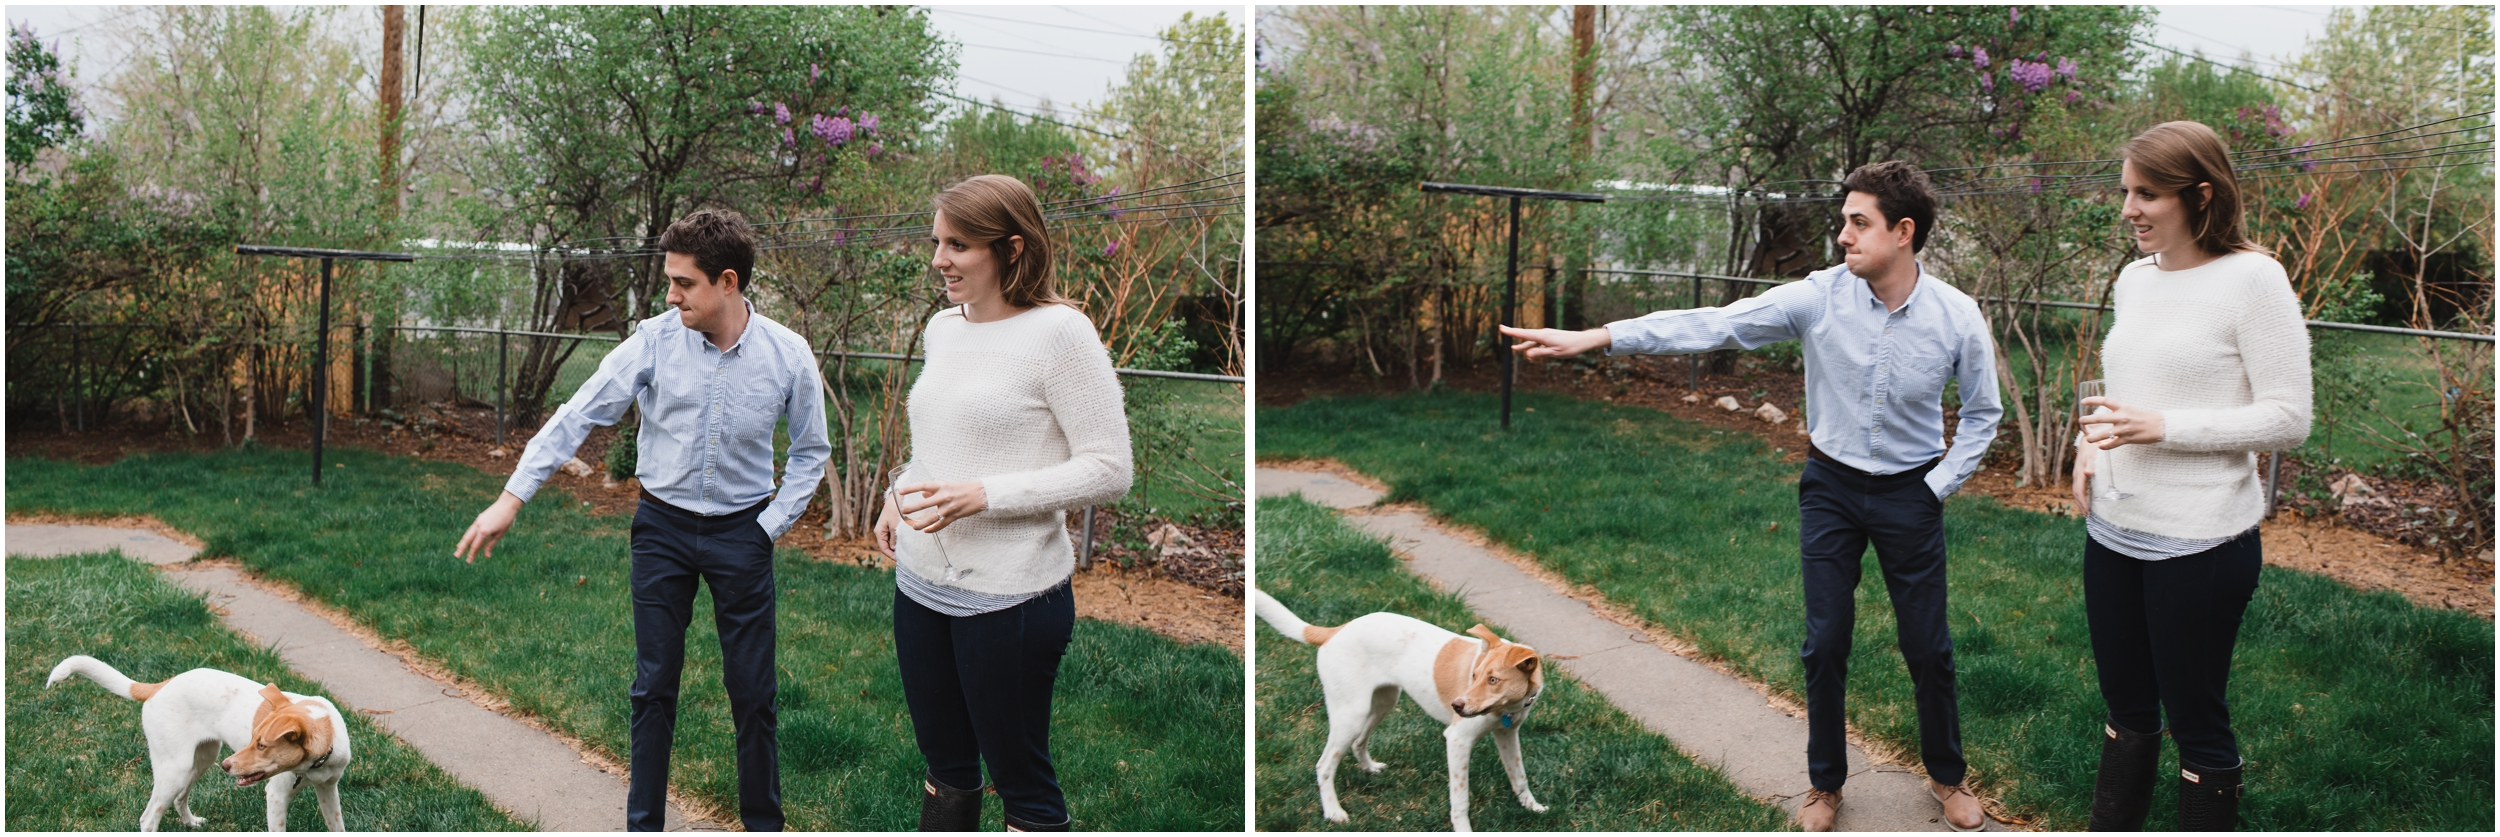 denver-in-home-engagement-session-colorado-wedding-photographer__0159.jpg